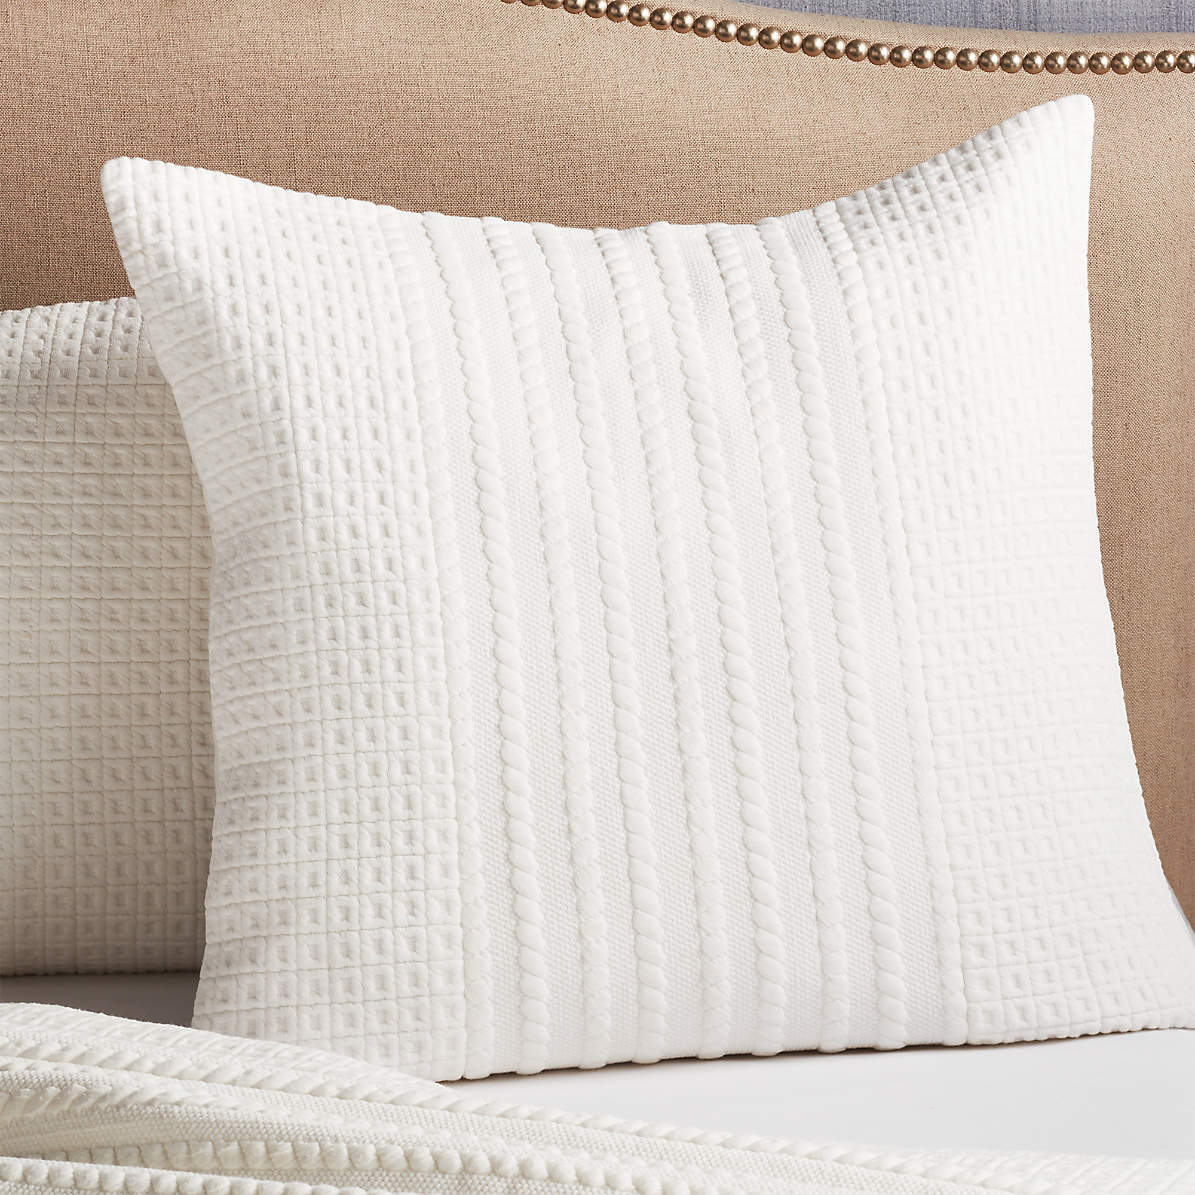 Doret White Jersey Euro Sham Reviews Crate And Barrel